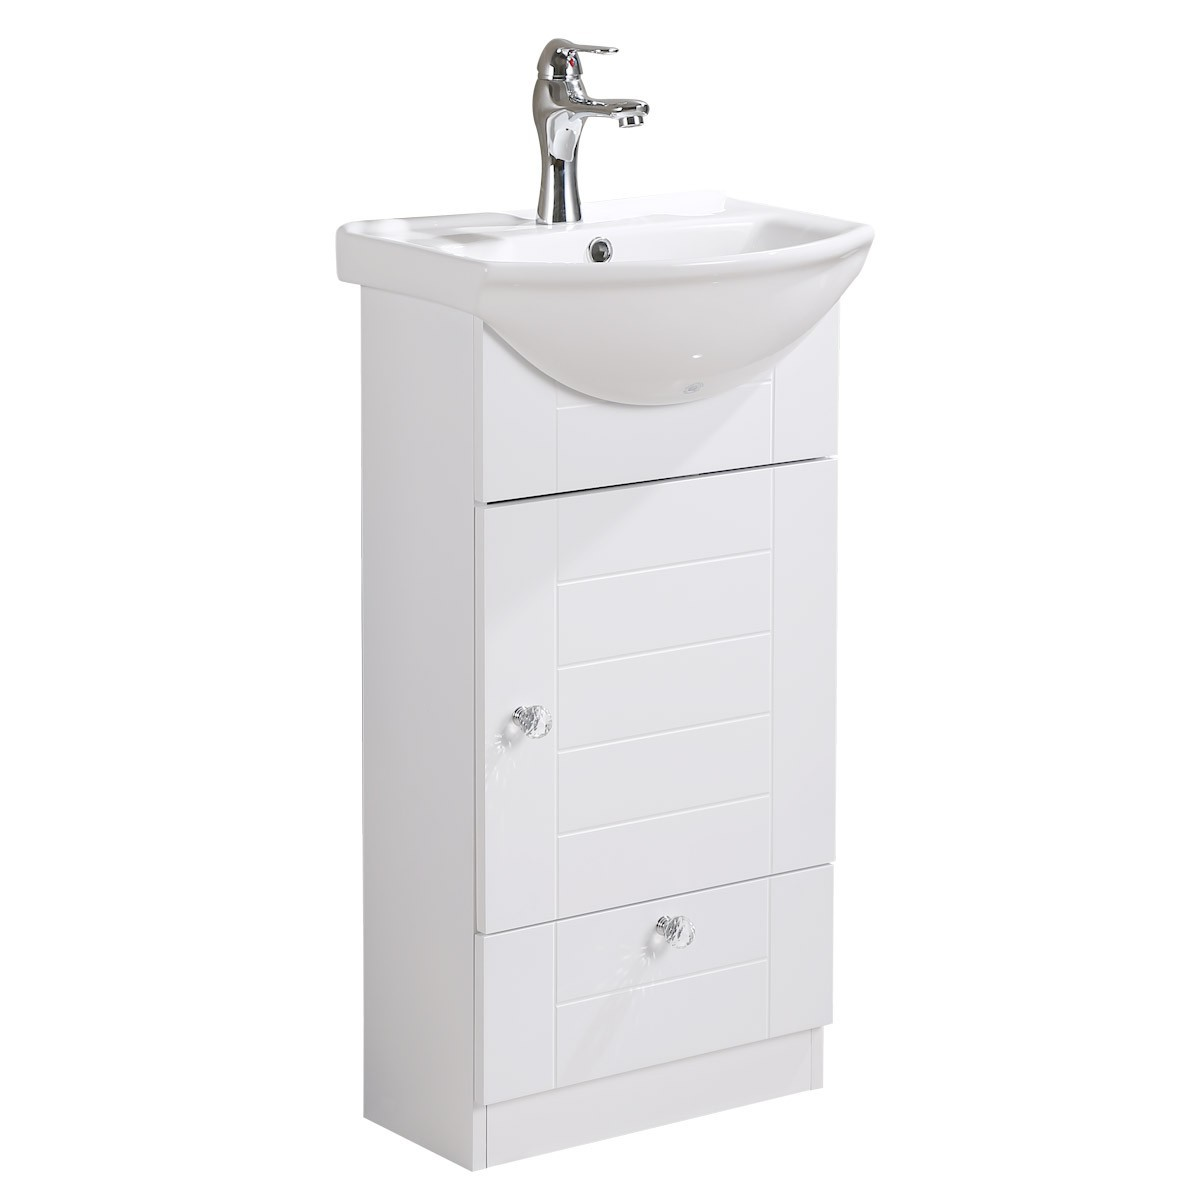 Small bathroom sink cabinets